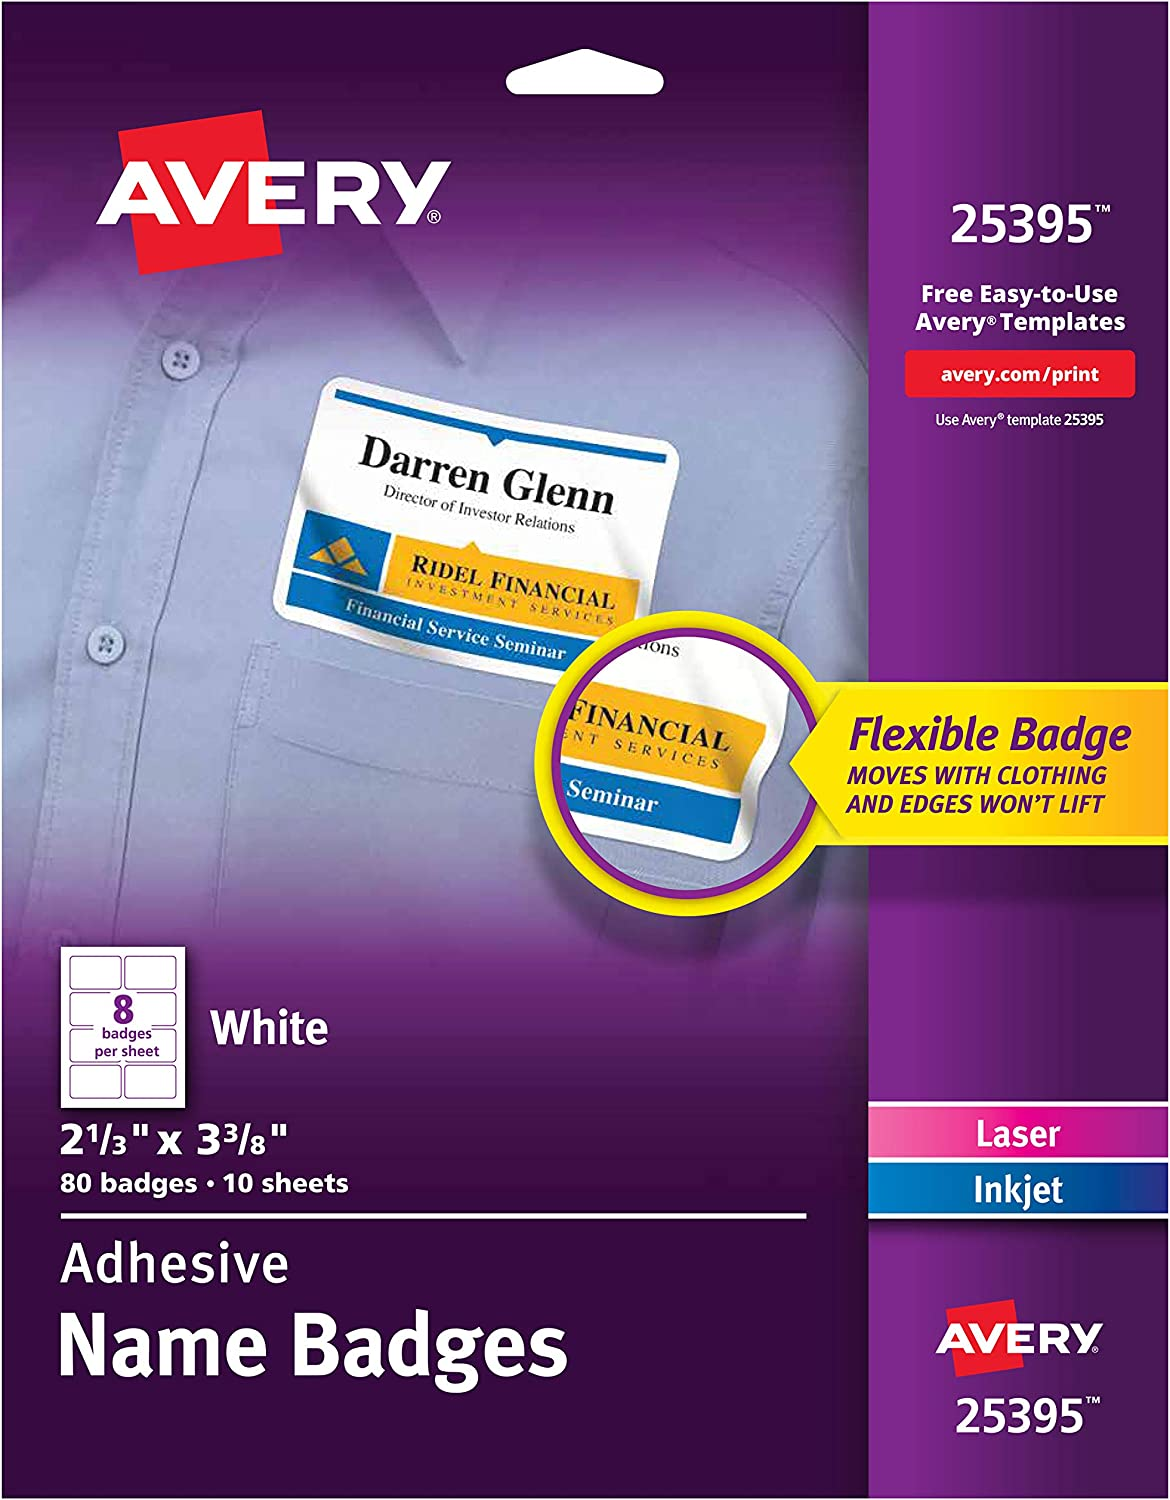 "AVERY Flexible Name Tag Stickers, White Rectangle Labels, 80 Name Badges, 2-1/3"" x 3-3/8"" (25395)"